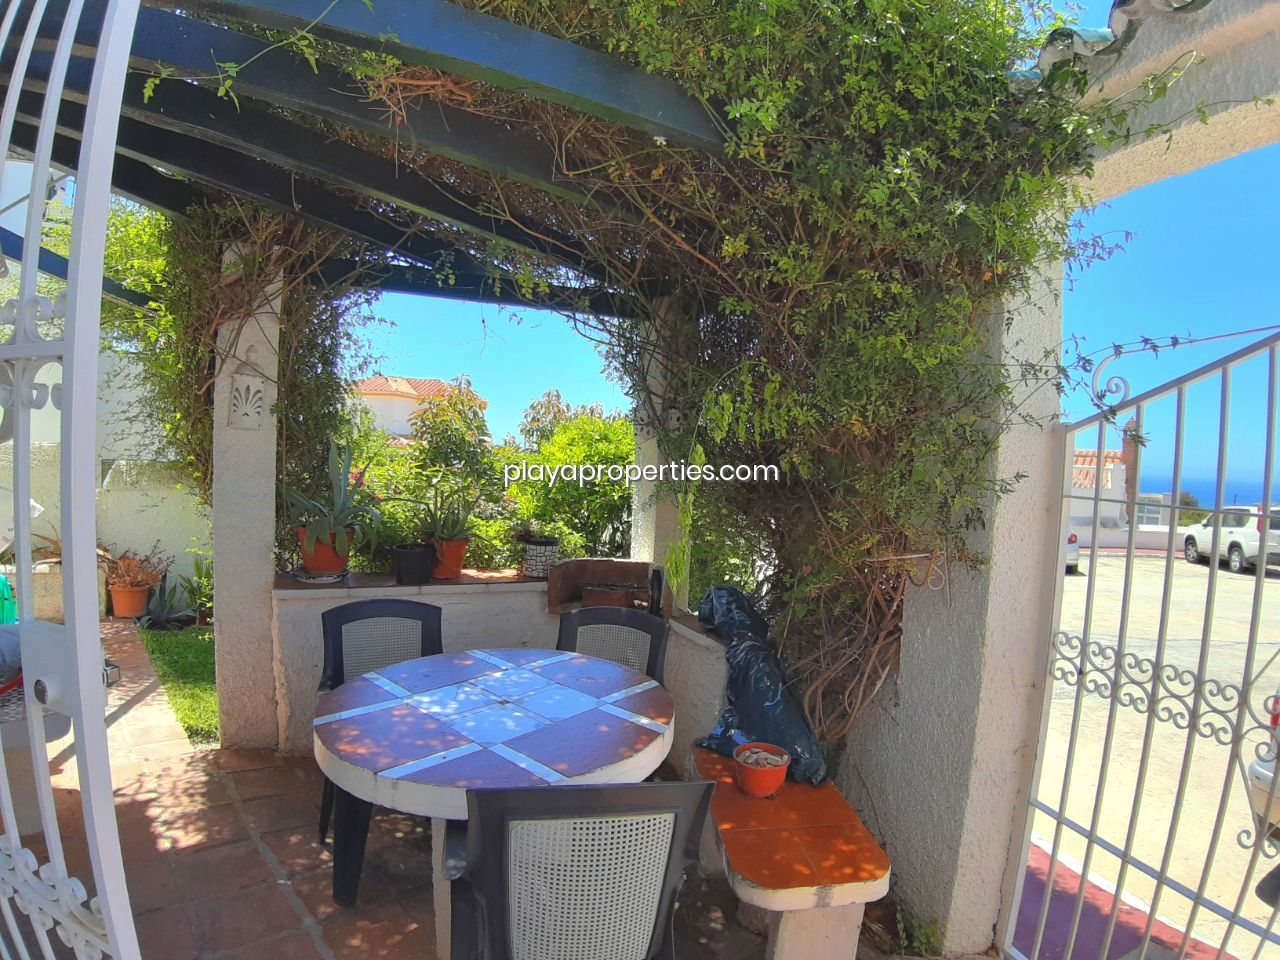 For Rent Apartment In Nerja Maro With Parking